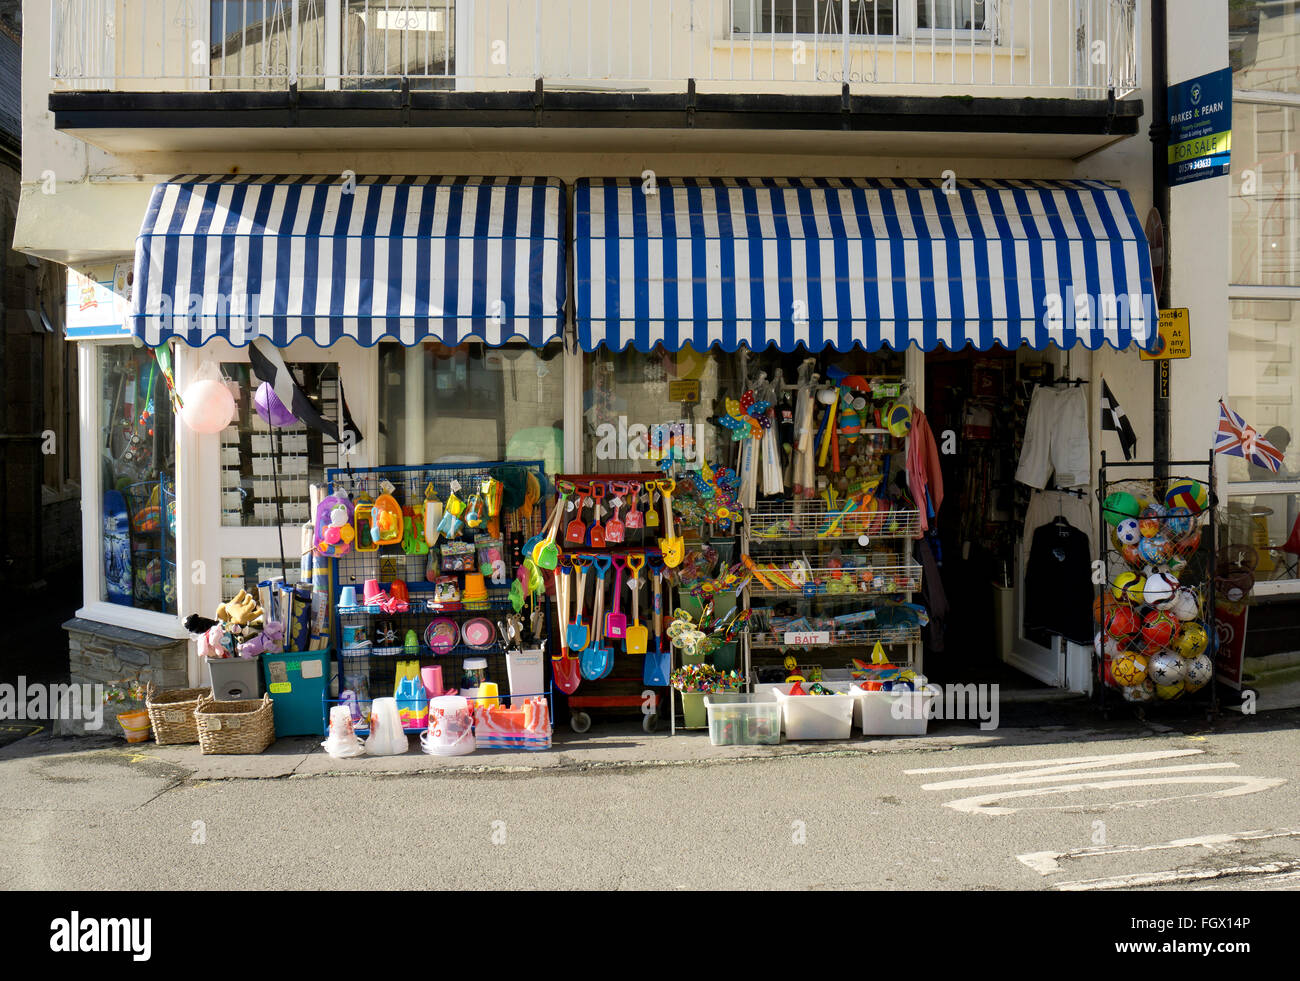 A traditional British seaside shop selling buckets and spades, beach toys, postcards and souvenirs - Stock Image